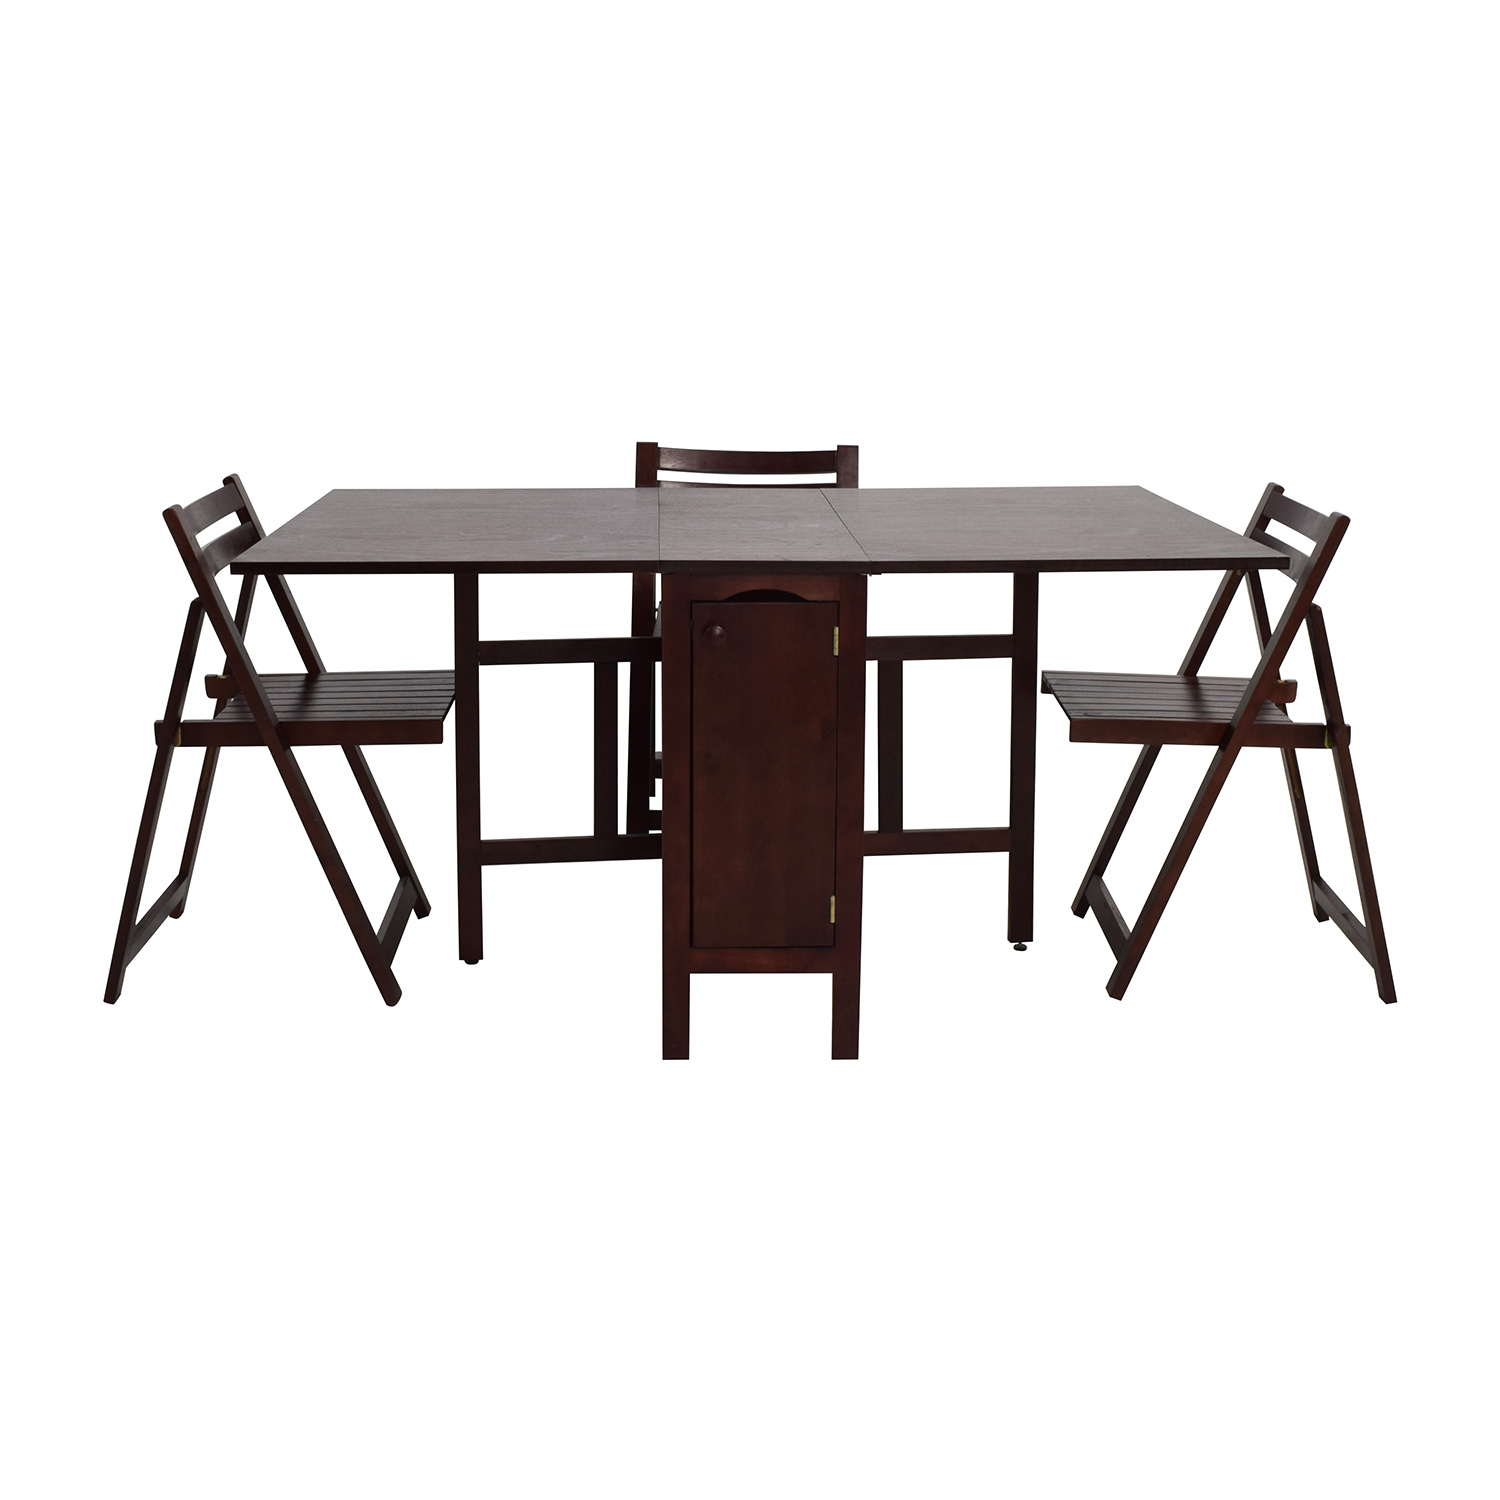 66 Off Foldable Kitchen Table With Folding Chairs Tables